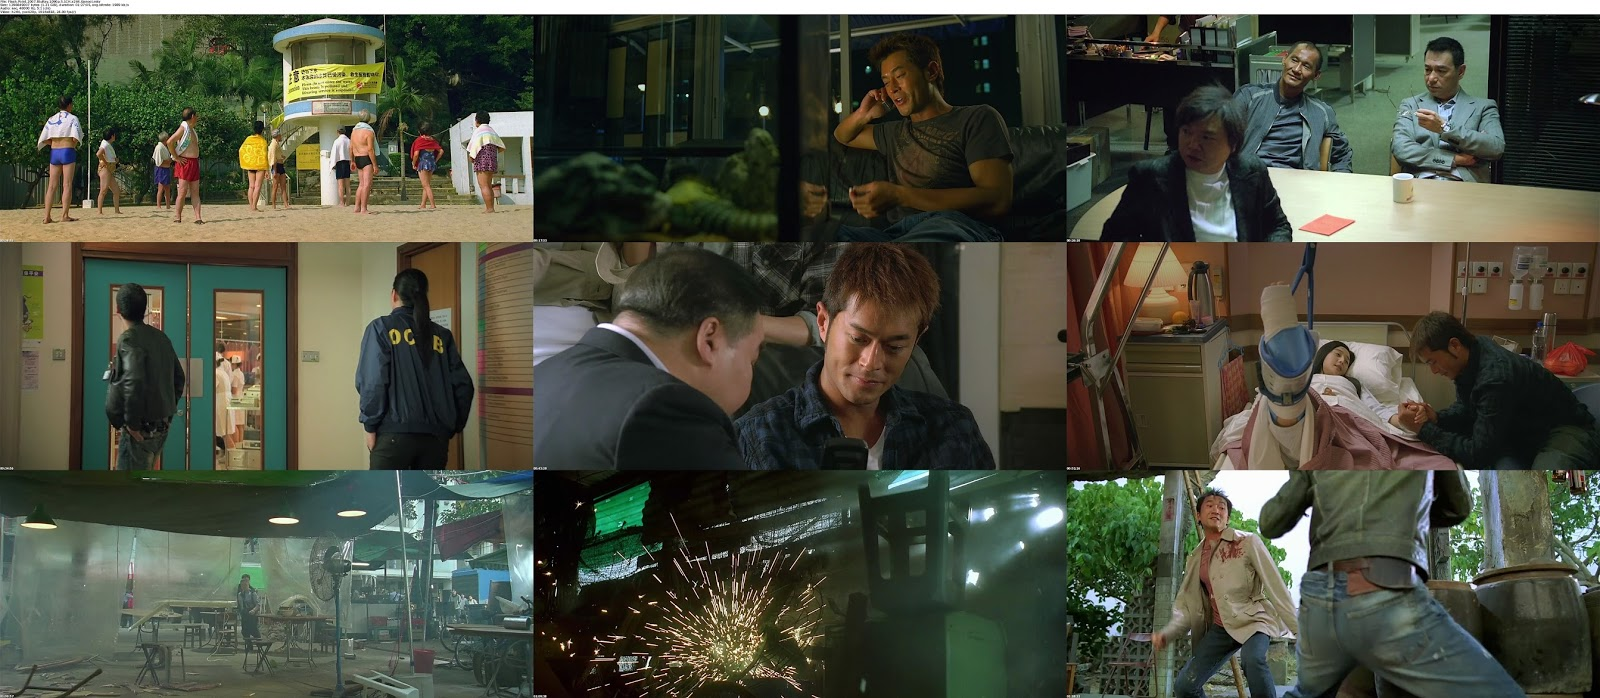 download flash point 2007 bluray 720p